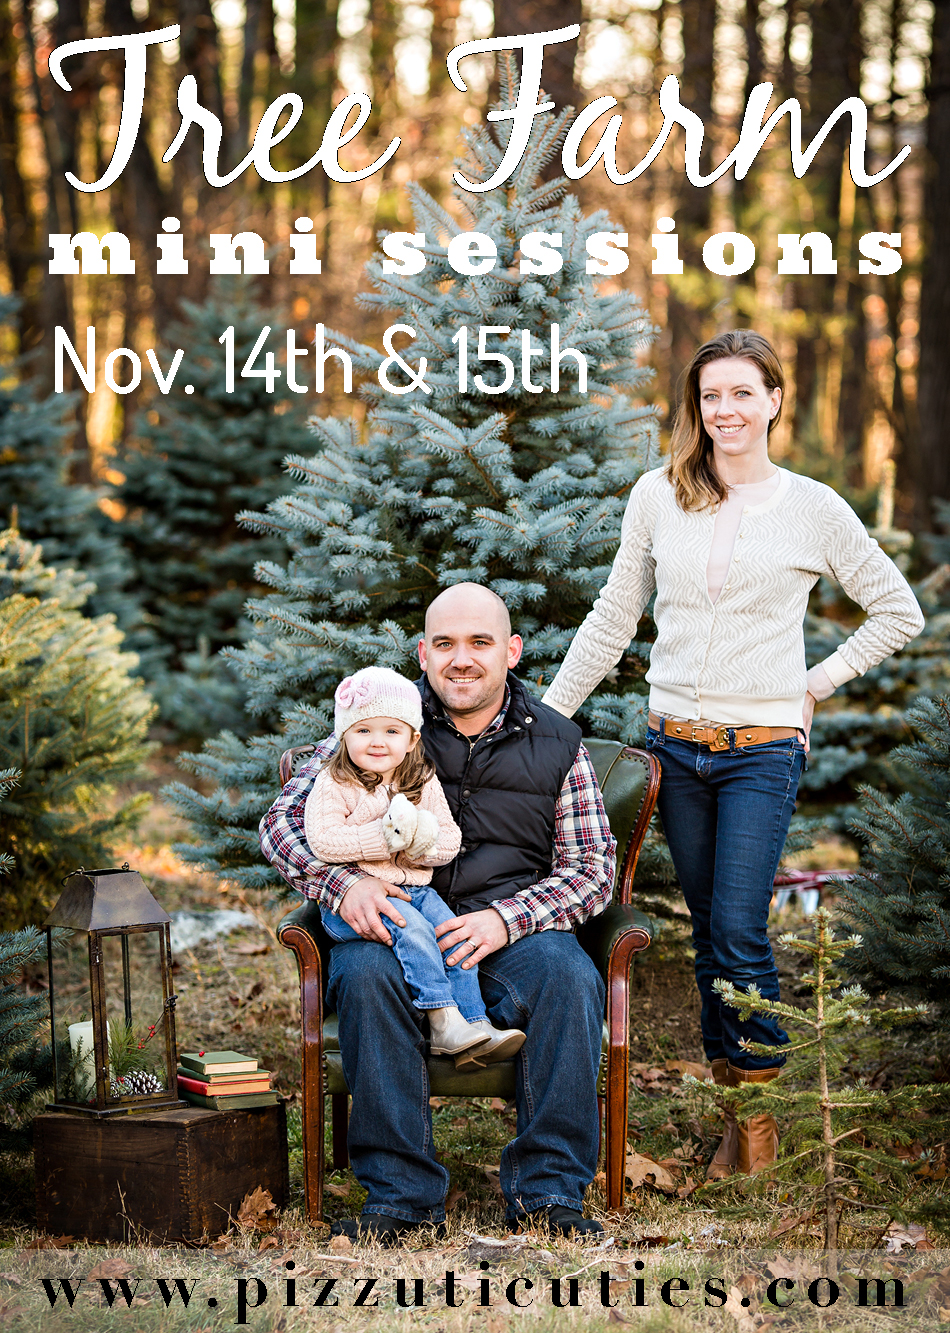 Christmas Tree Farm Mini Sessions.Pizzuti Cuties Photography Tree Farm Mini Sessions Pizzuti